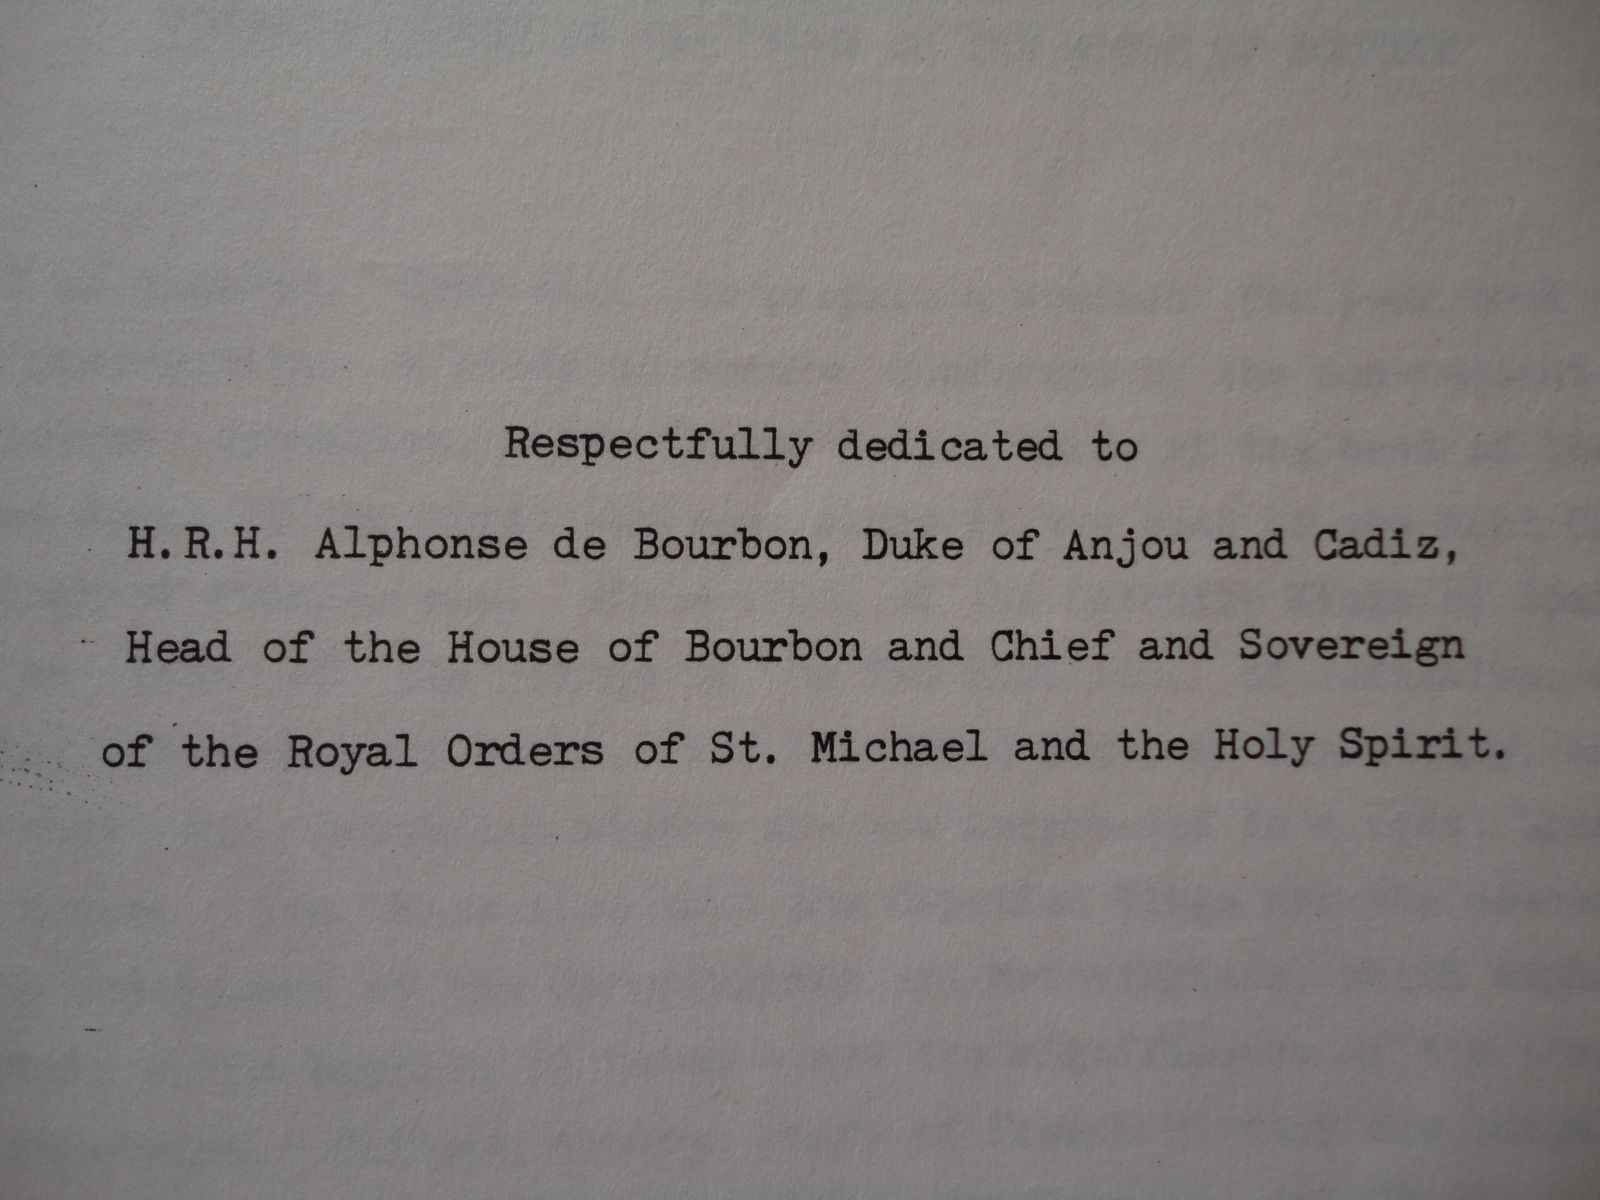 THE ROYAL PREROGATIVE BY RONALD E. PROSSER - DEDICACE AU PRINCE ALPHONSE DE BOURBON